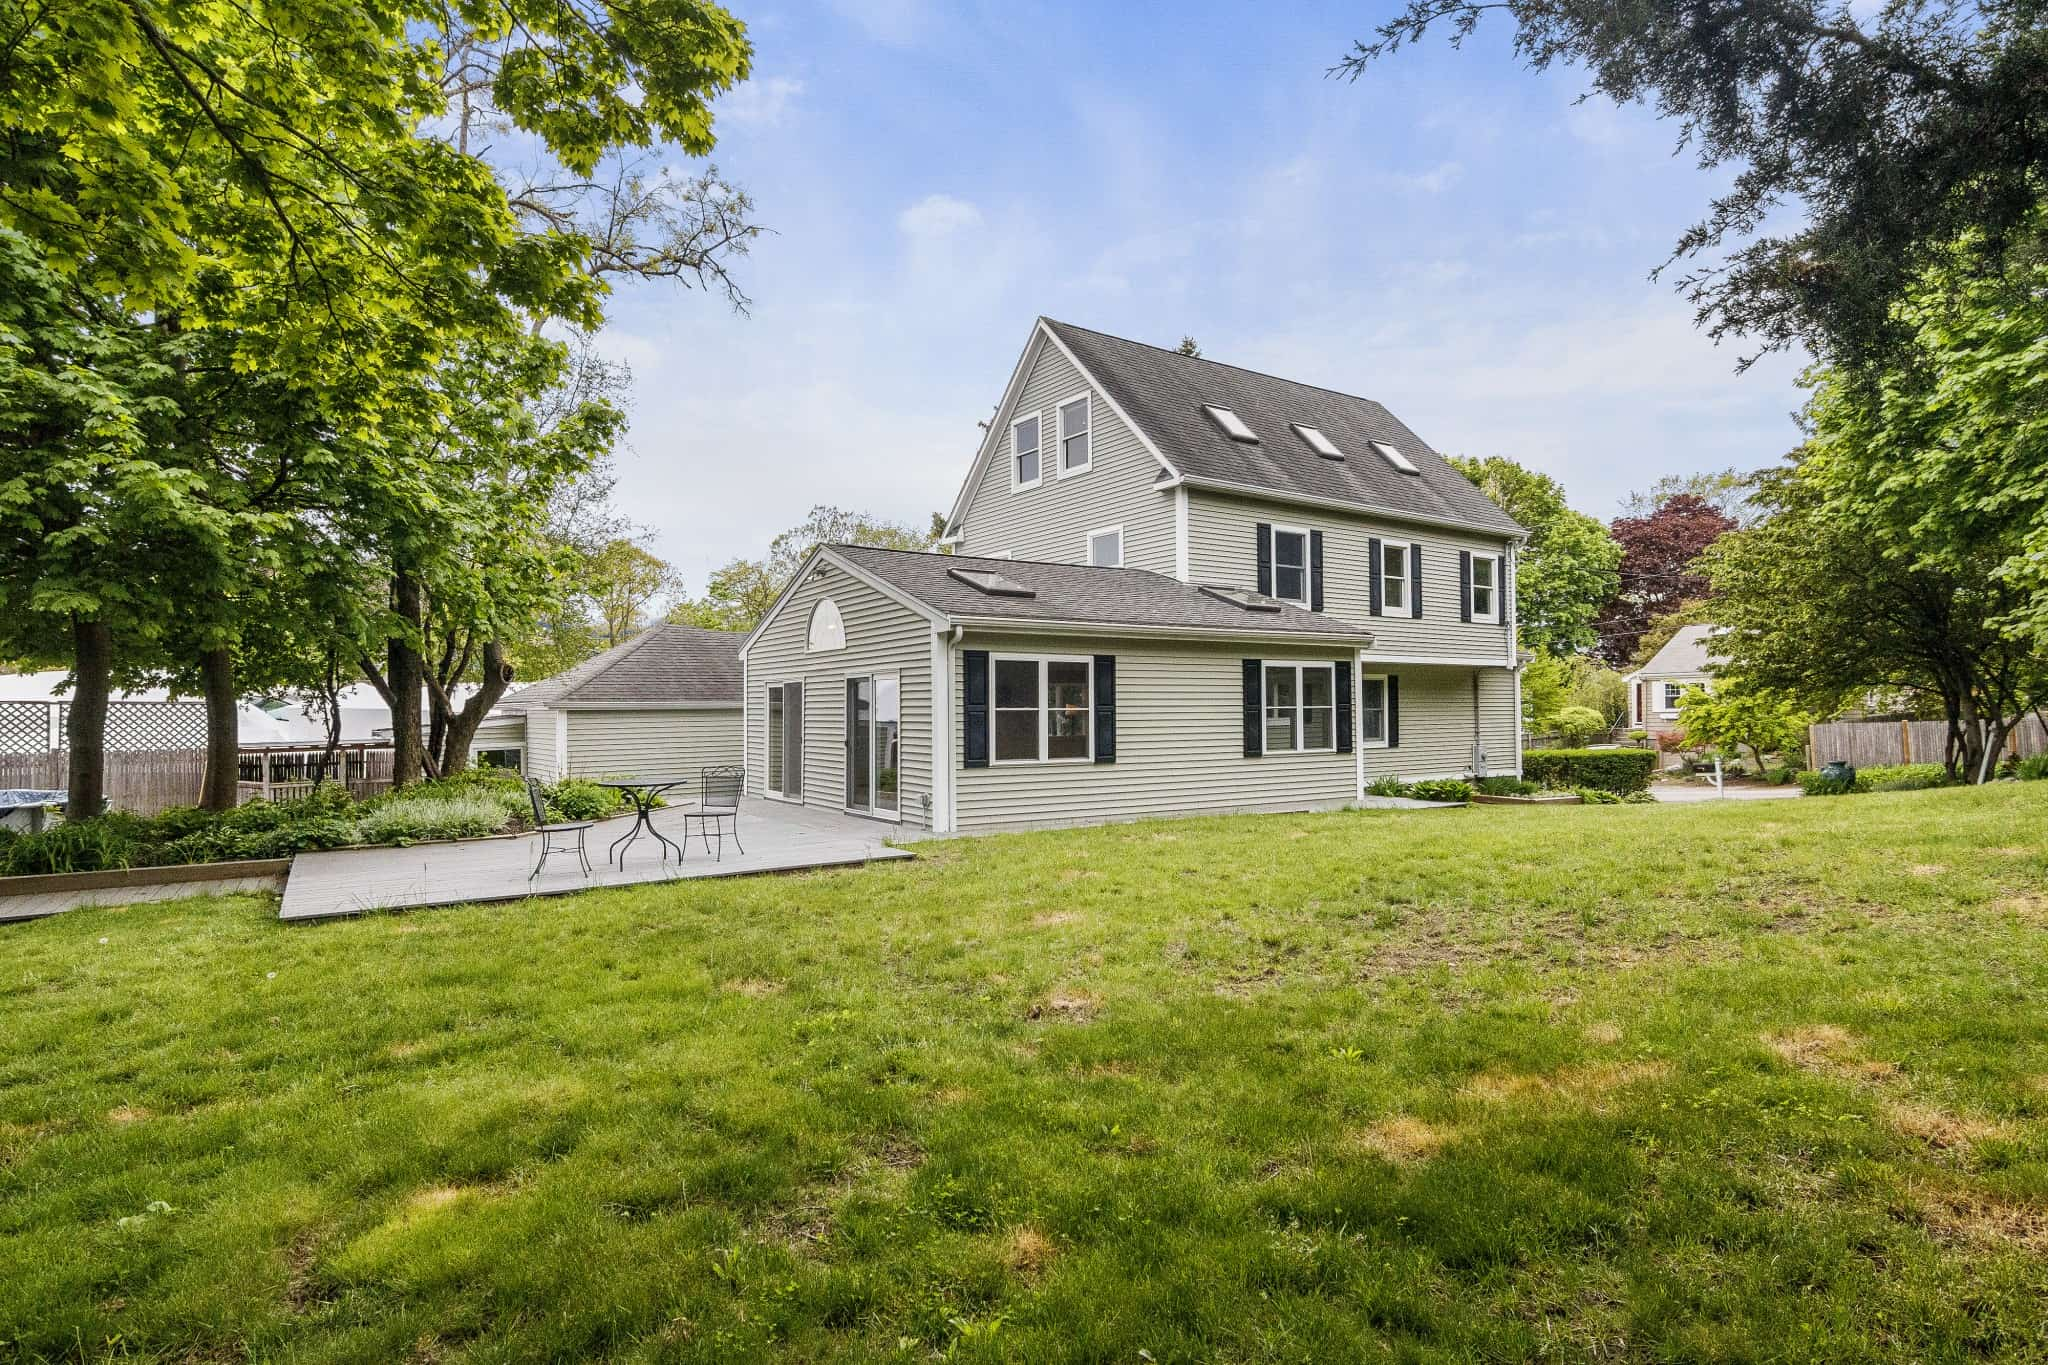 Real Estate Photography in Quincy - MA - USA - Front View